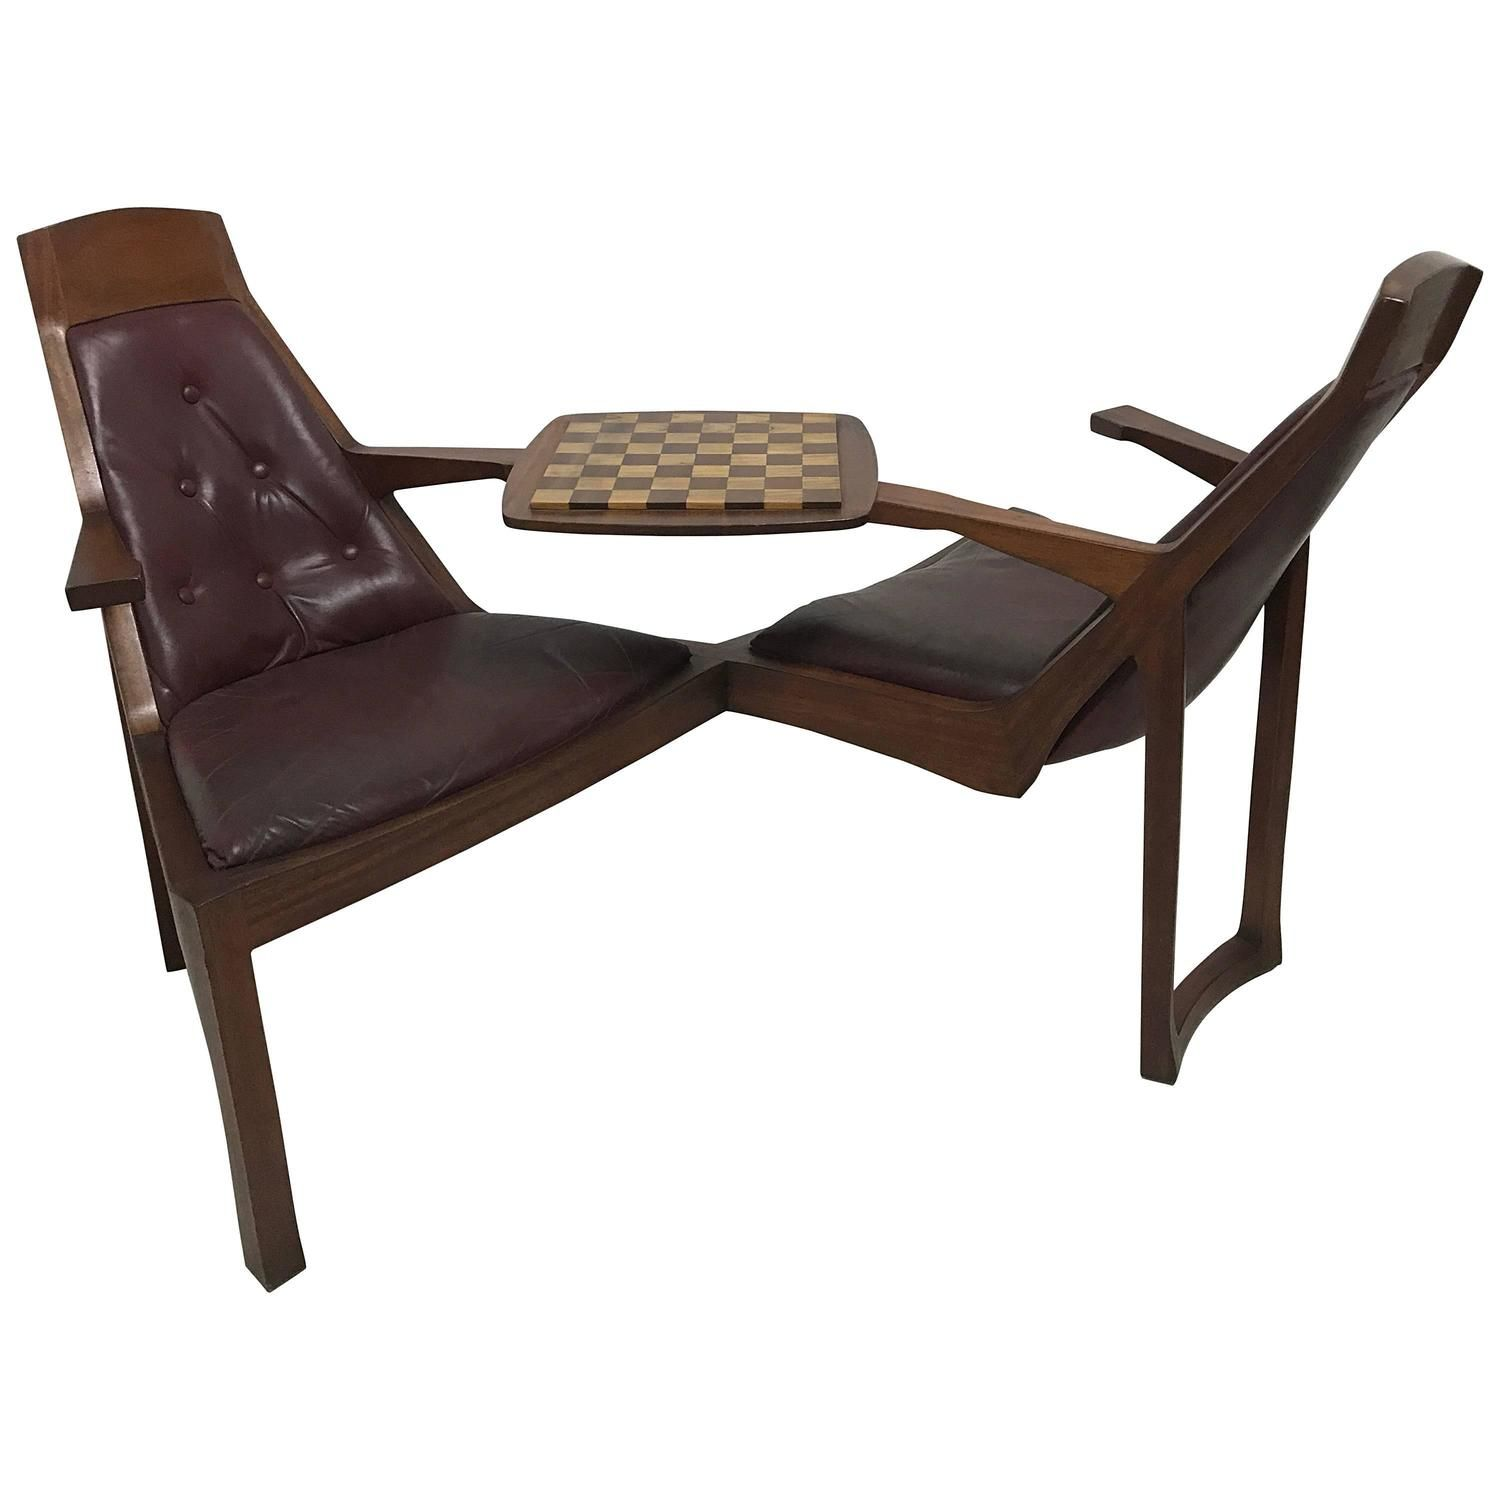 Exceptional Danish Style Teak Duet Seat For Lovers Of Chess Signed R Bellinger, 1977 Good Ideas